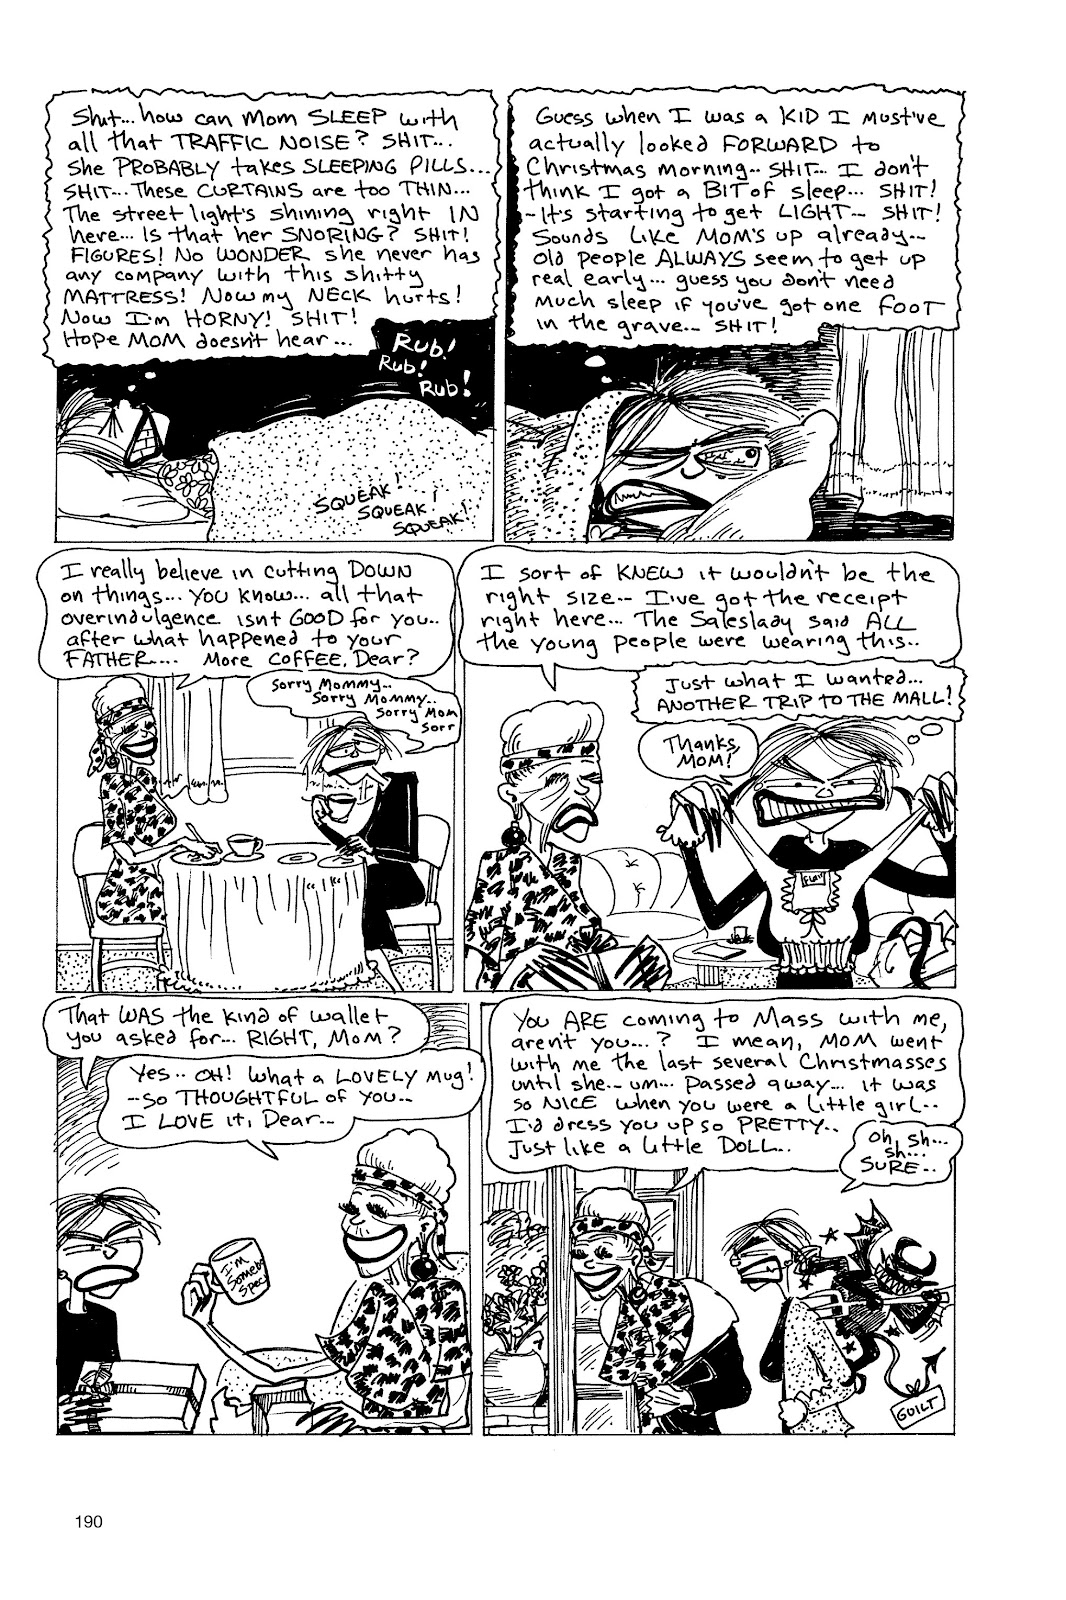 Read online Life's a Bitch: The Complete Bitchy Bitch Stories comic -  Issue # TPB (Part 2) - 86